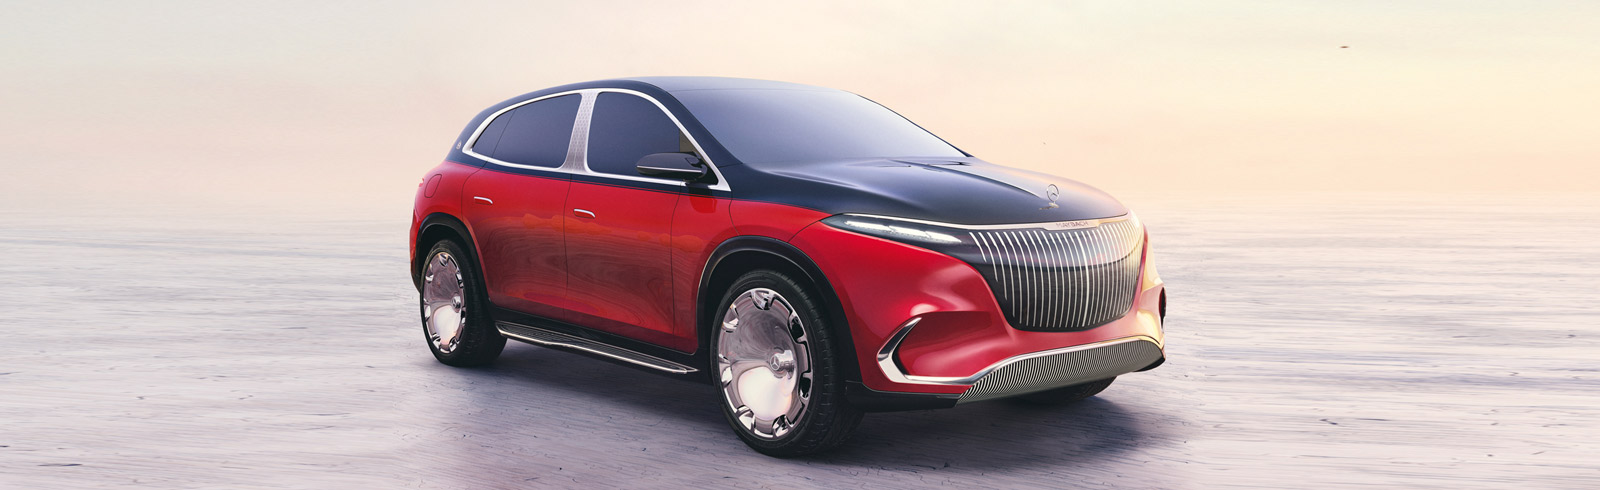 The Mercedes-Maybach Concept EQS is presented at IAA Mobility 2021